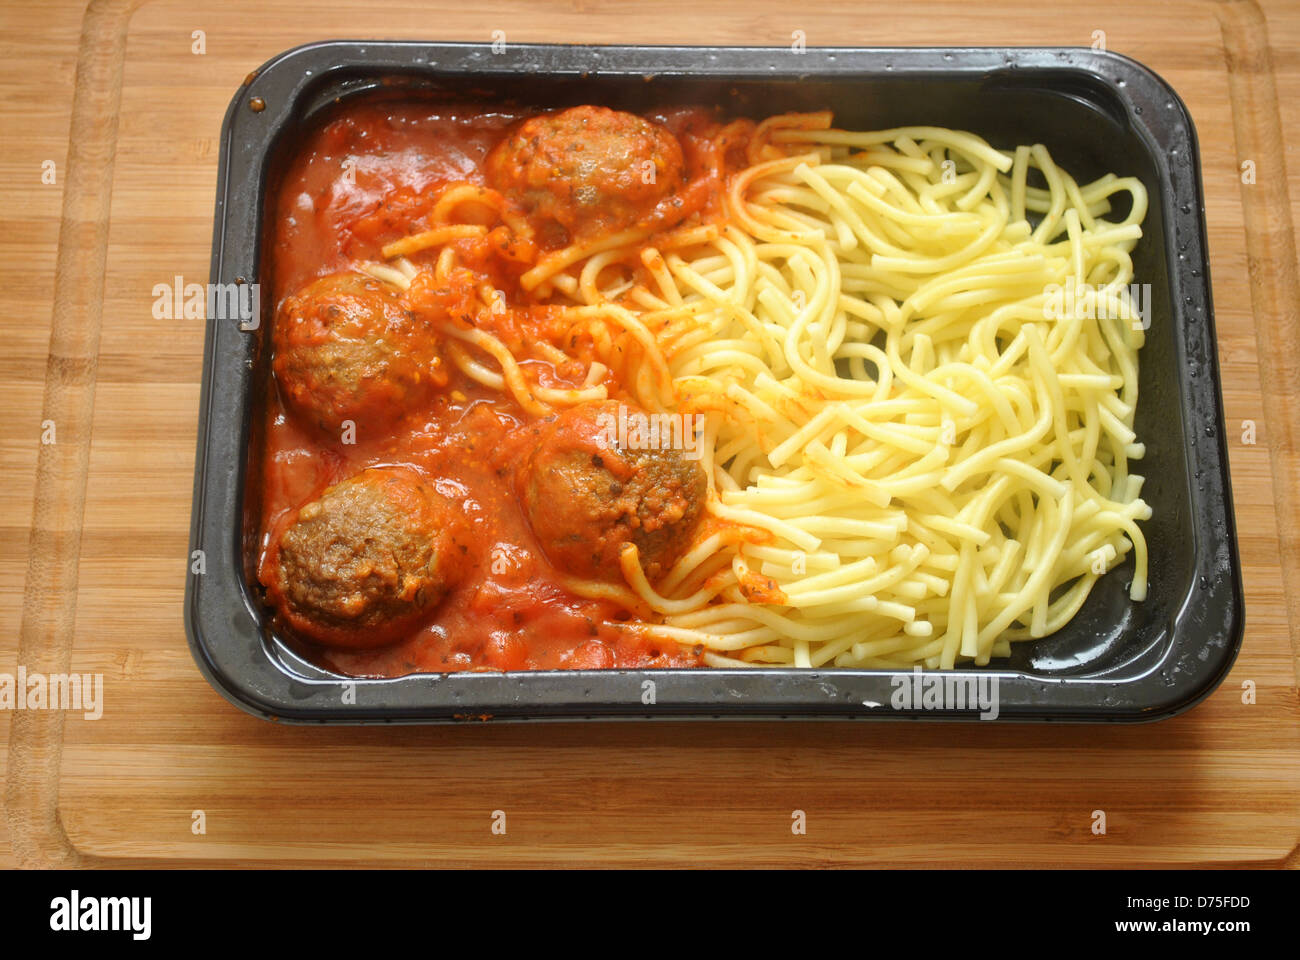 Heated Spaghetti and Meatball TV Dinner - Stock Image